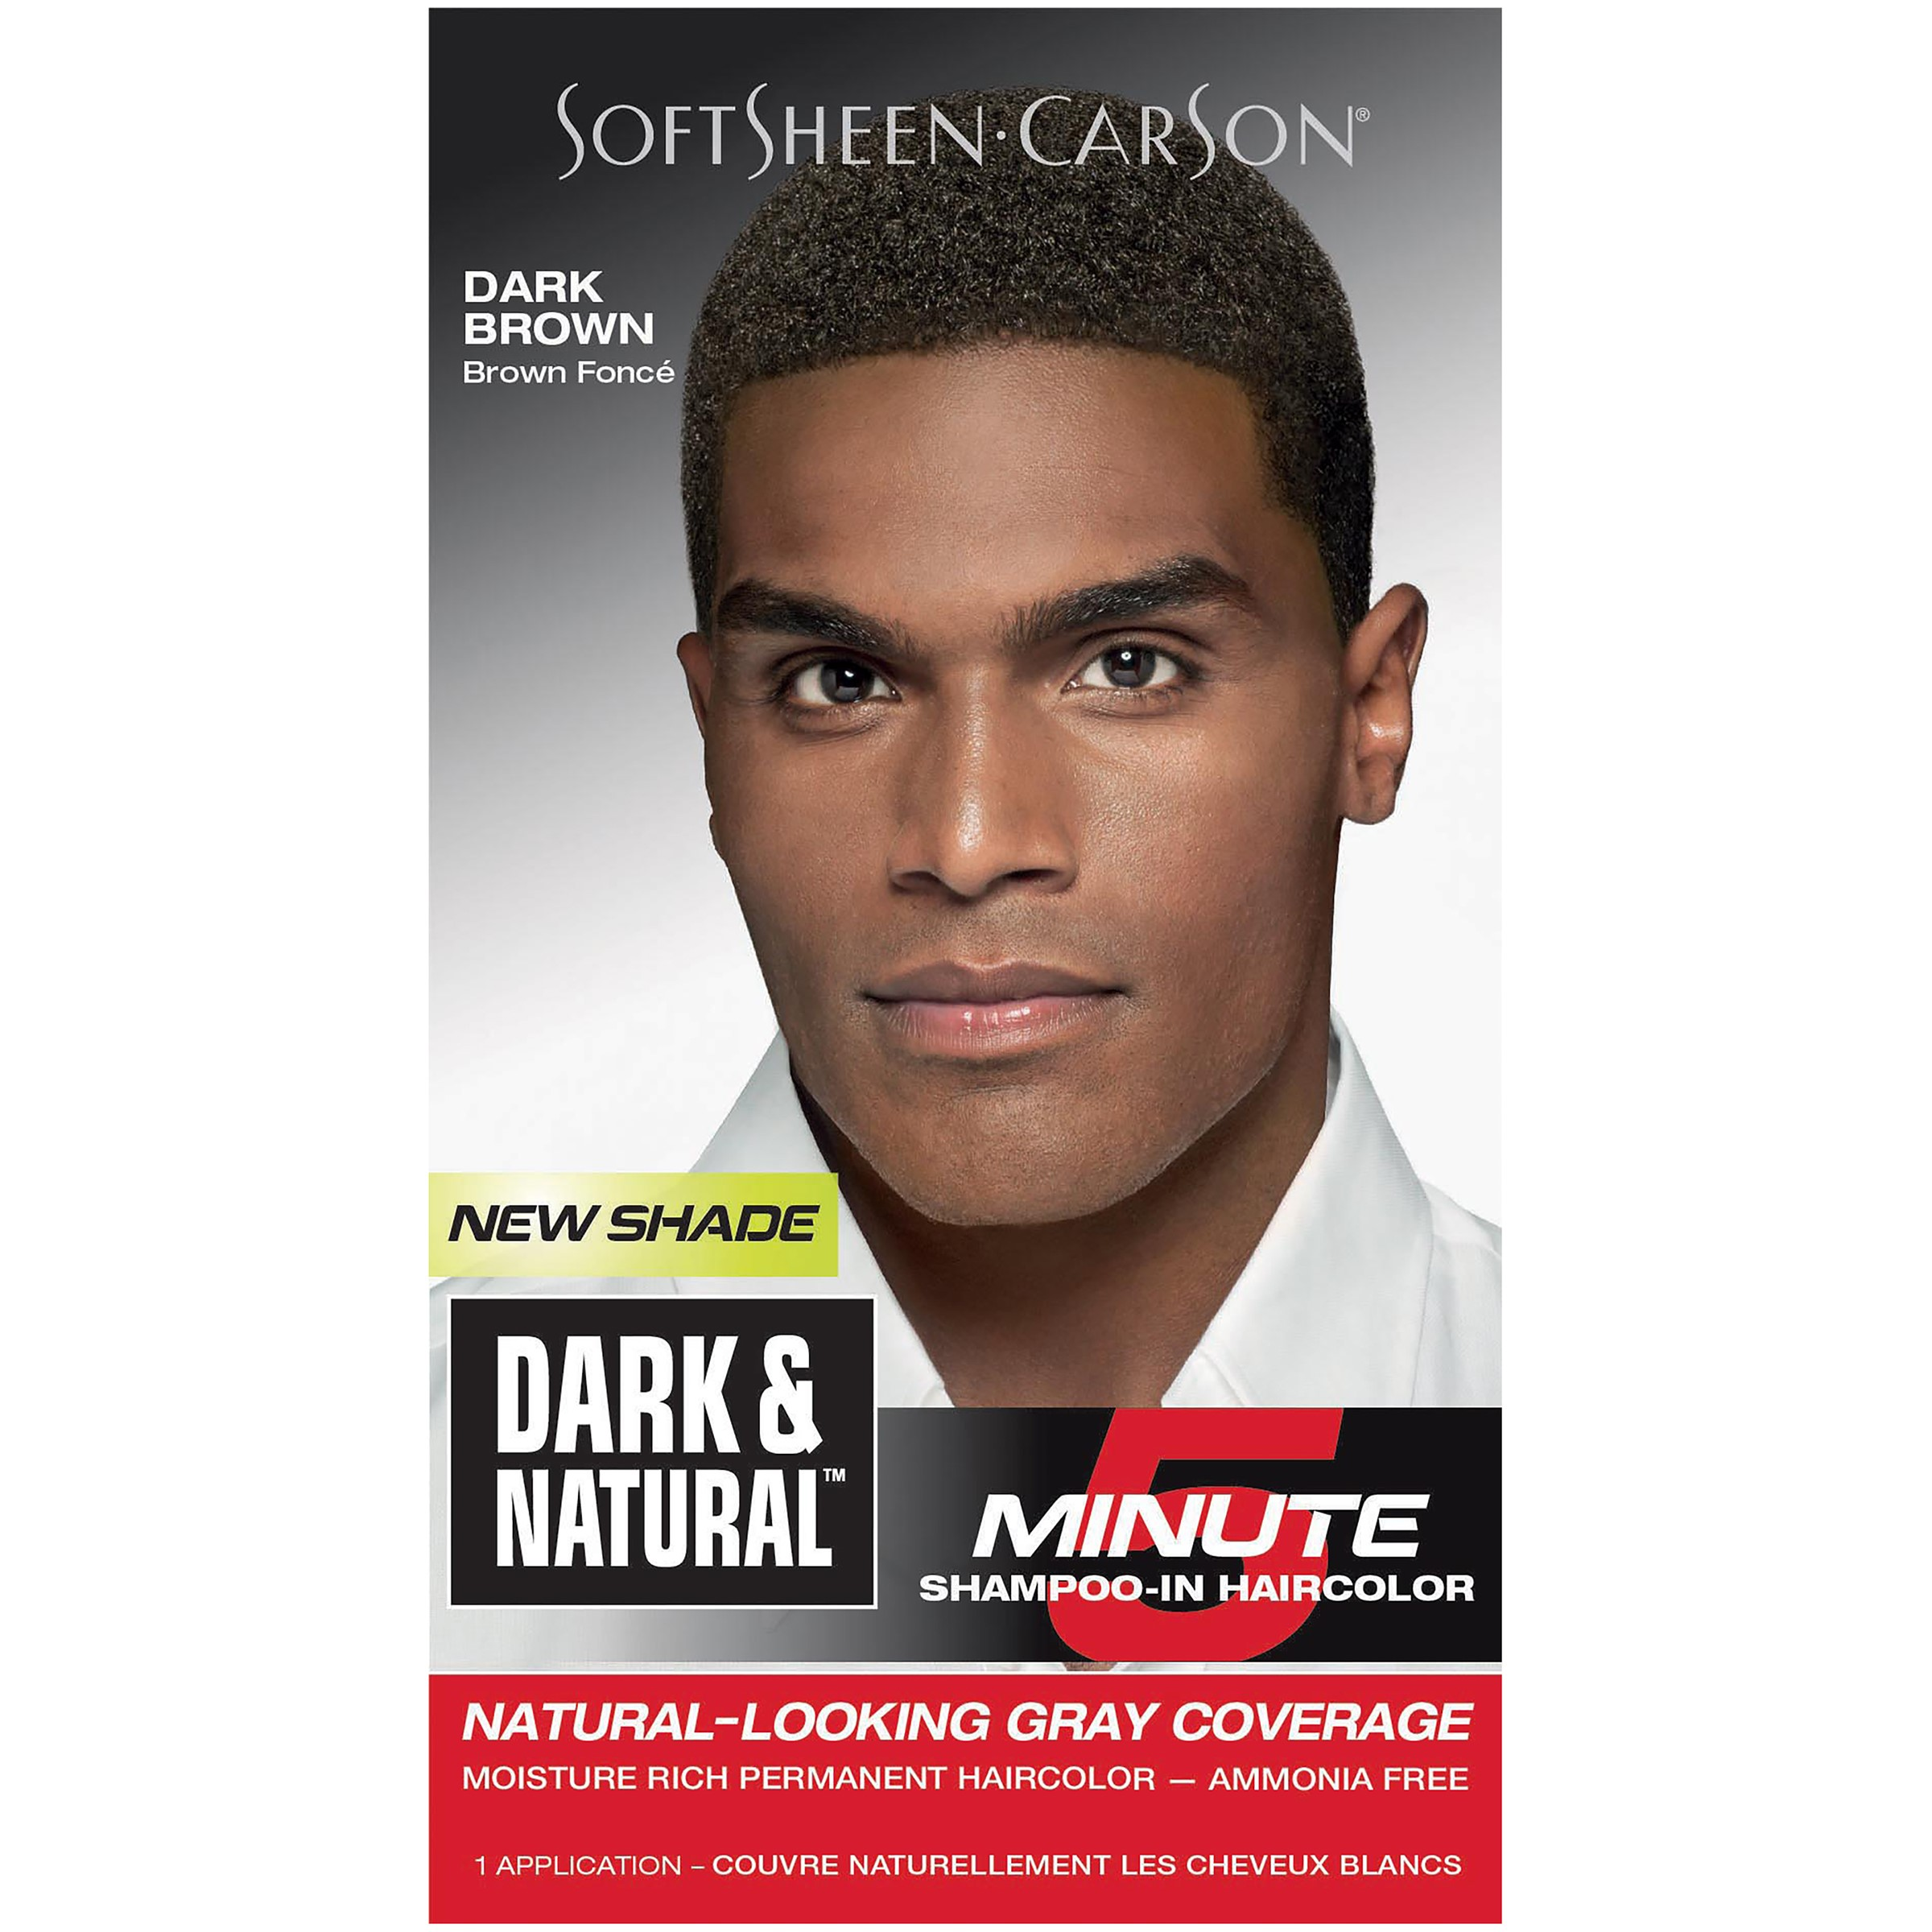 SoftSheen-Carson Dark & Natural 5 Minute Shampoo-In Haircolor